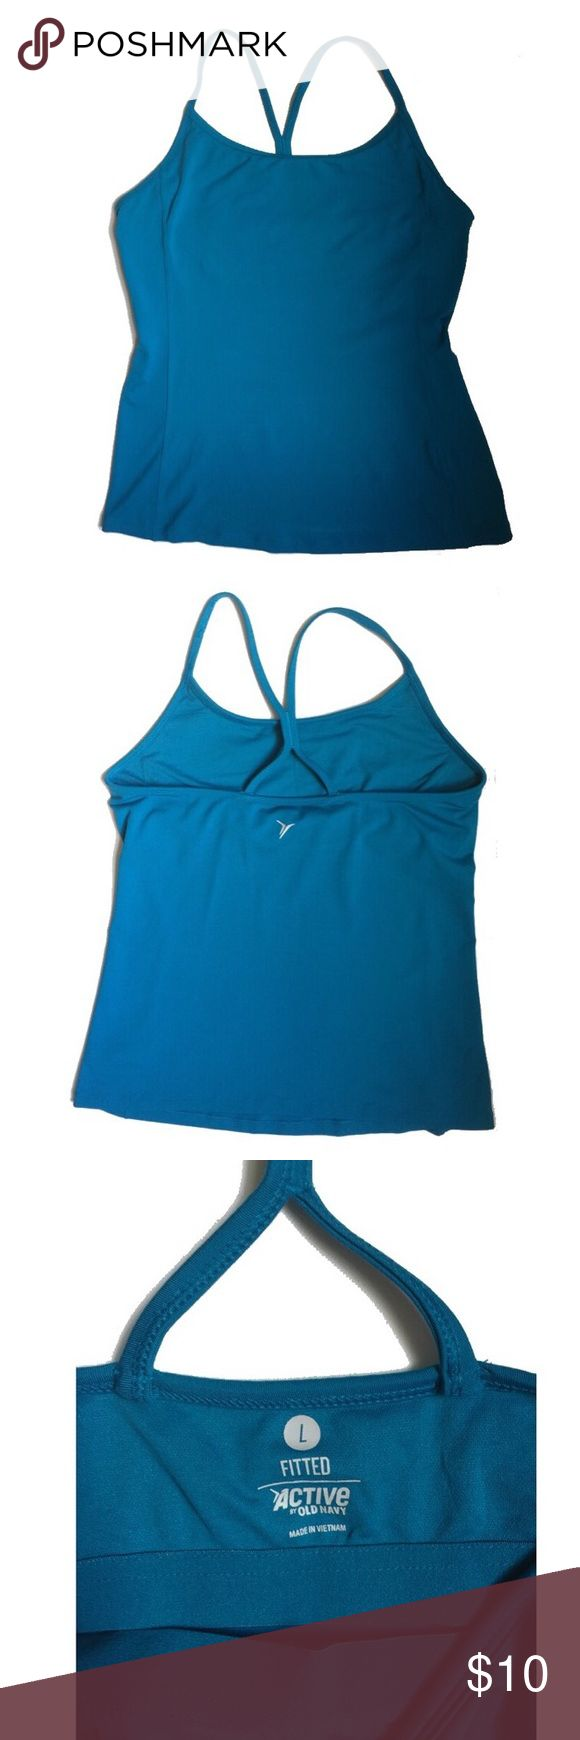 Old Navy | Fitness Racerback  | Aqua | NWOT | Sz L Size large, fits true. Built in bra, camisole type of fitness top with racerback style back. NWOT. Aqua blue Old Navy Tops